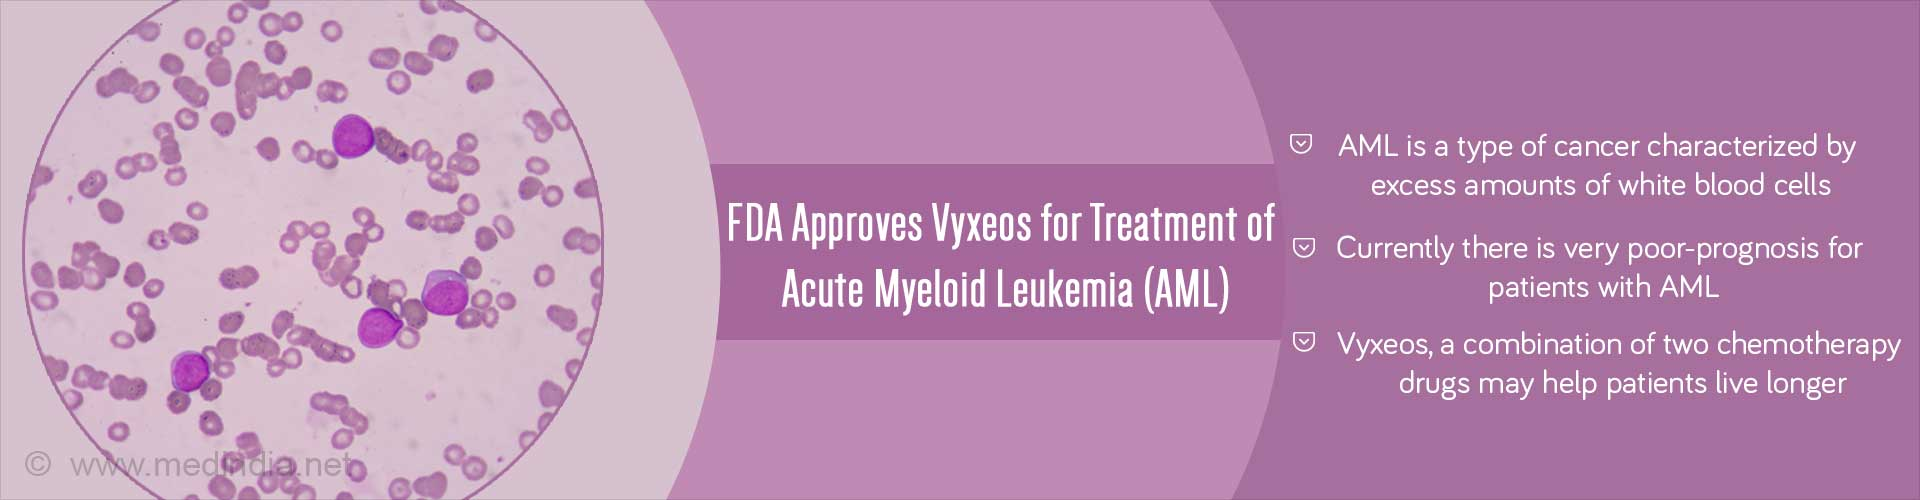 FDA Approves First Treatment for Certain Types of Acute Myeloid Leukemia